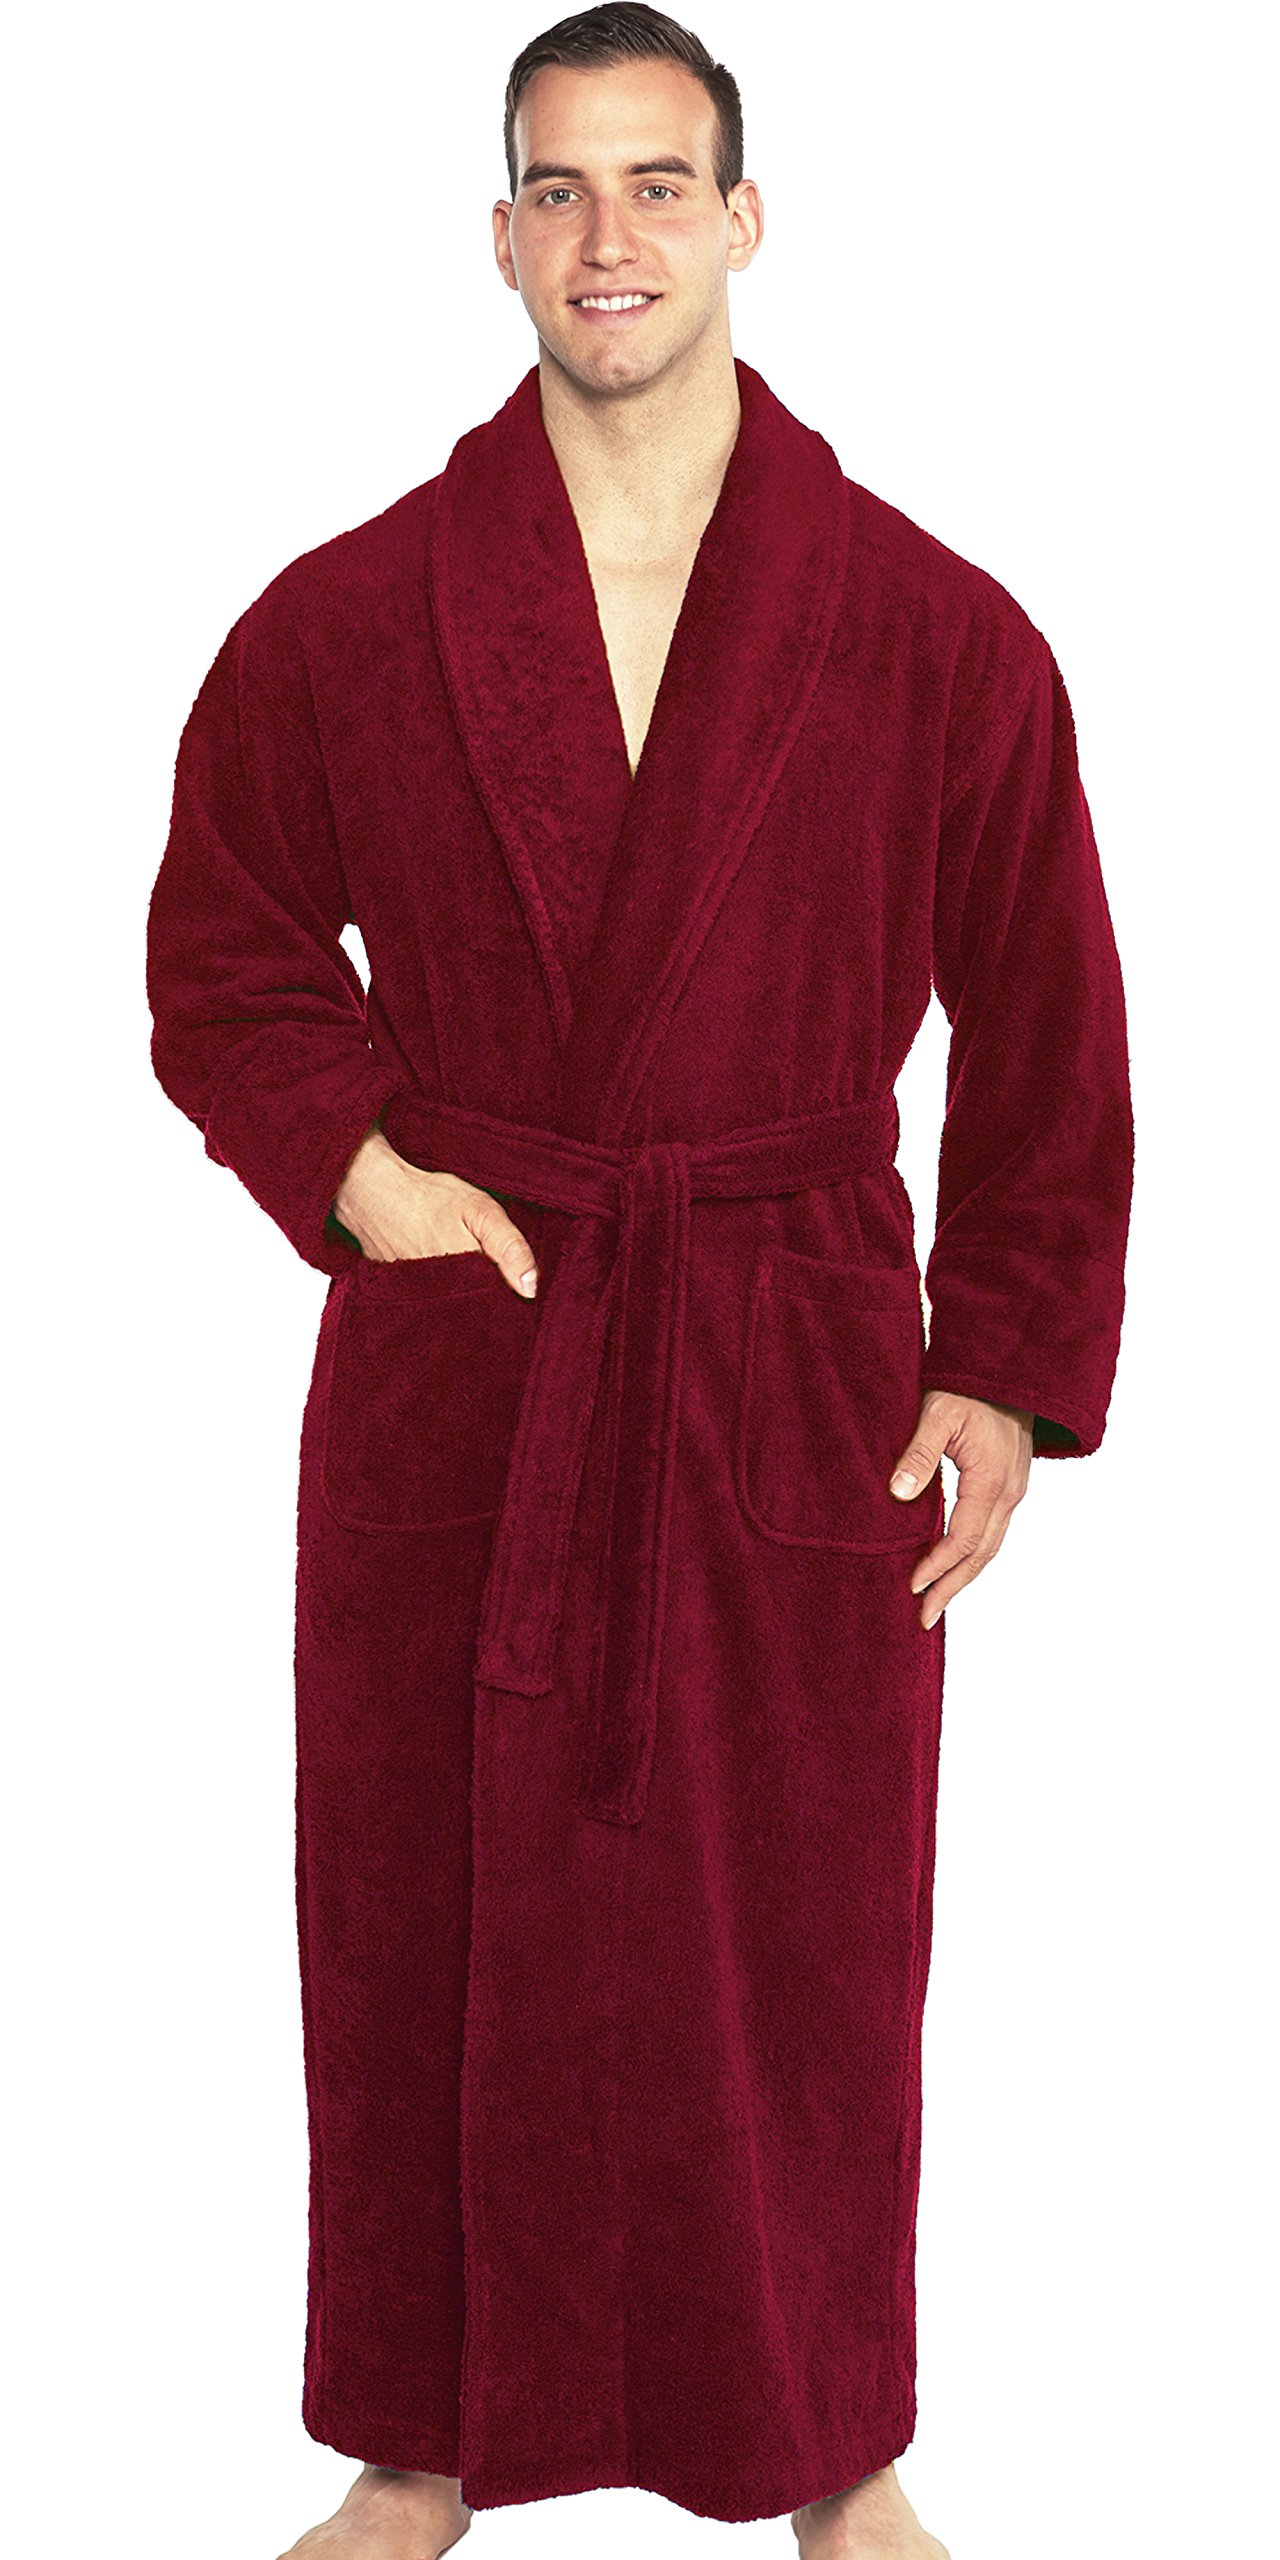 TurkishTowels Mens and Womens Original Terry Shawl Turkish Bathrobe-M, Maroon